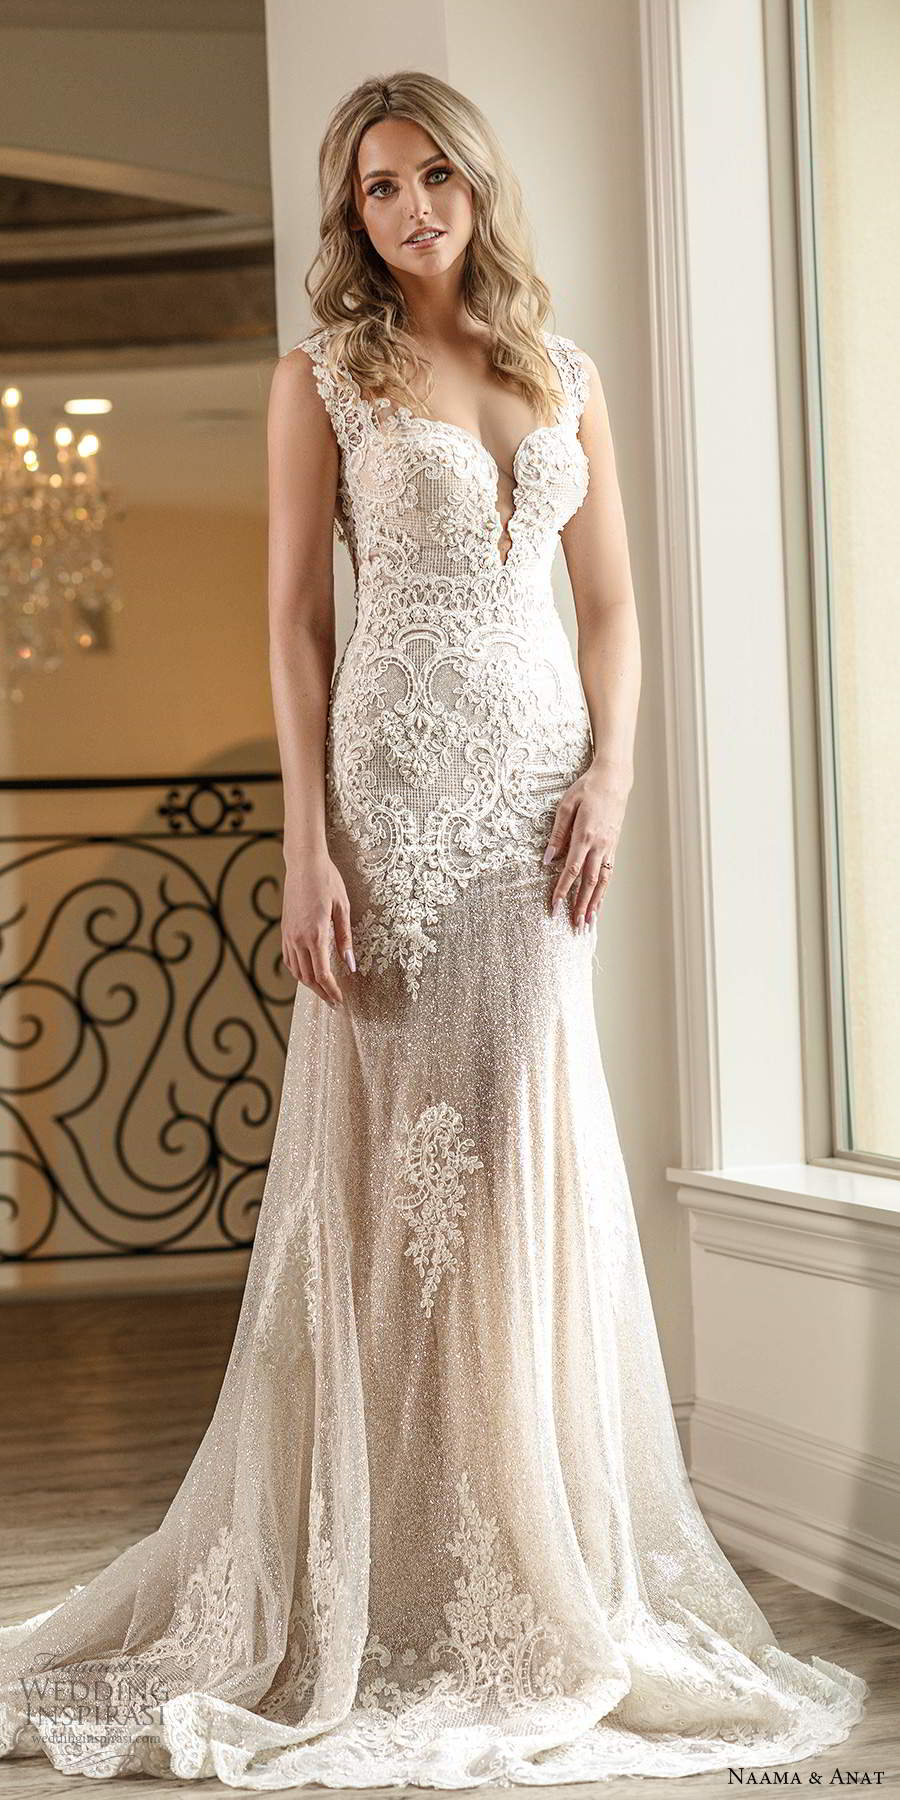 naama anat spring 2020 knottinghill bridal cap sleeves queen anne neckline fully embellished lace fit flare glitzy blush wedding dress chapel train (6) mv